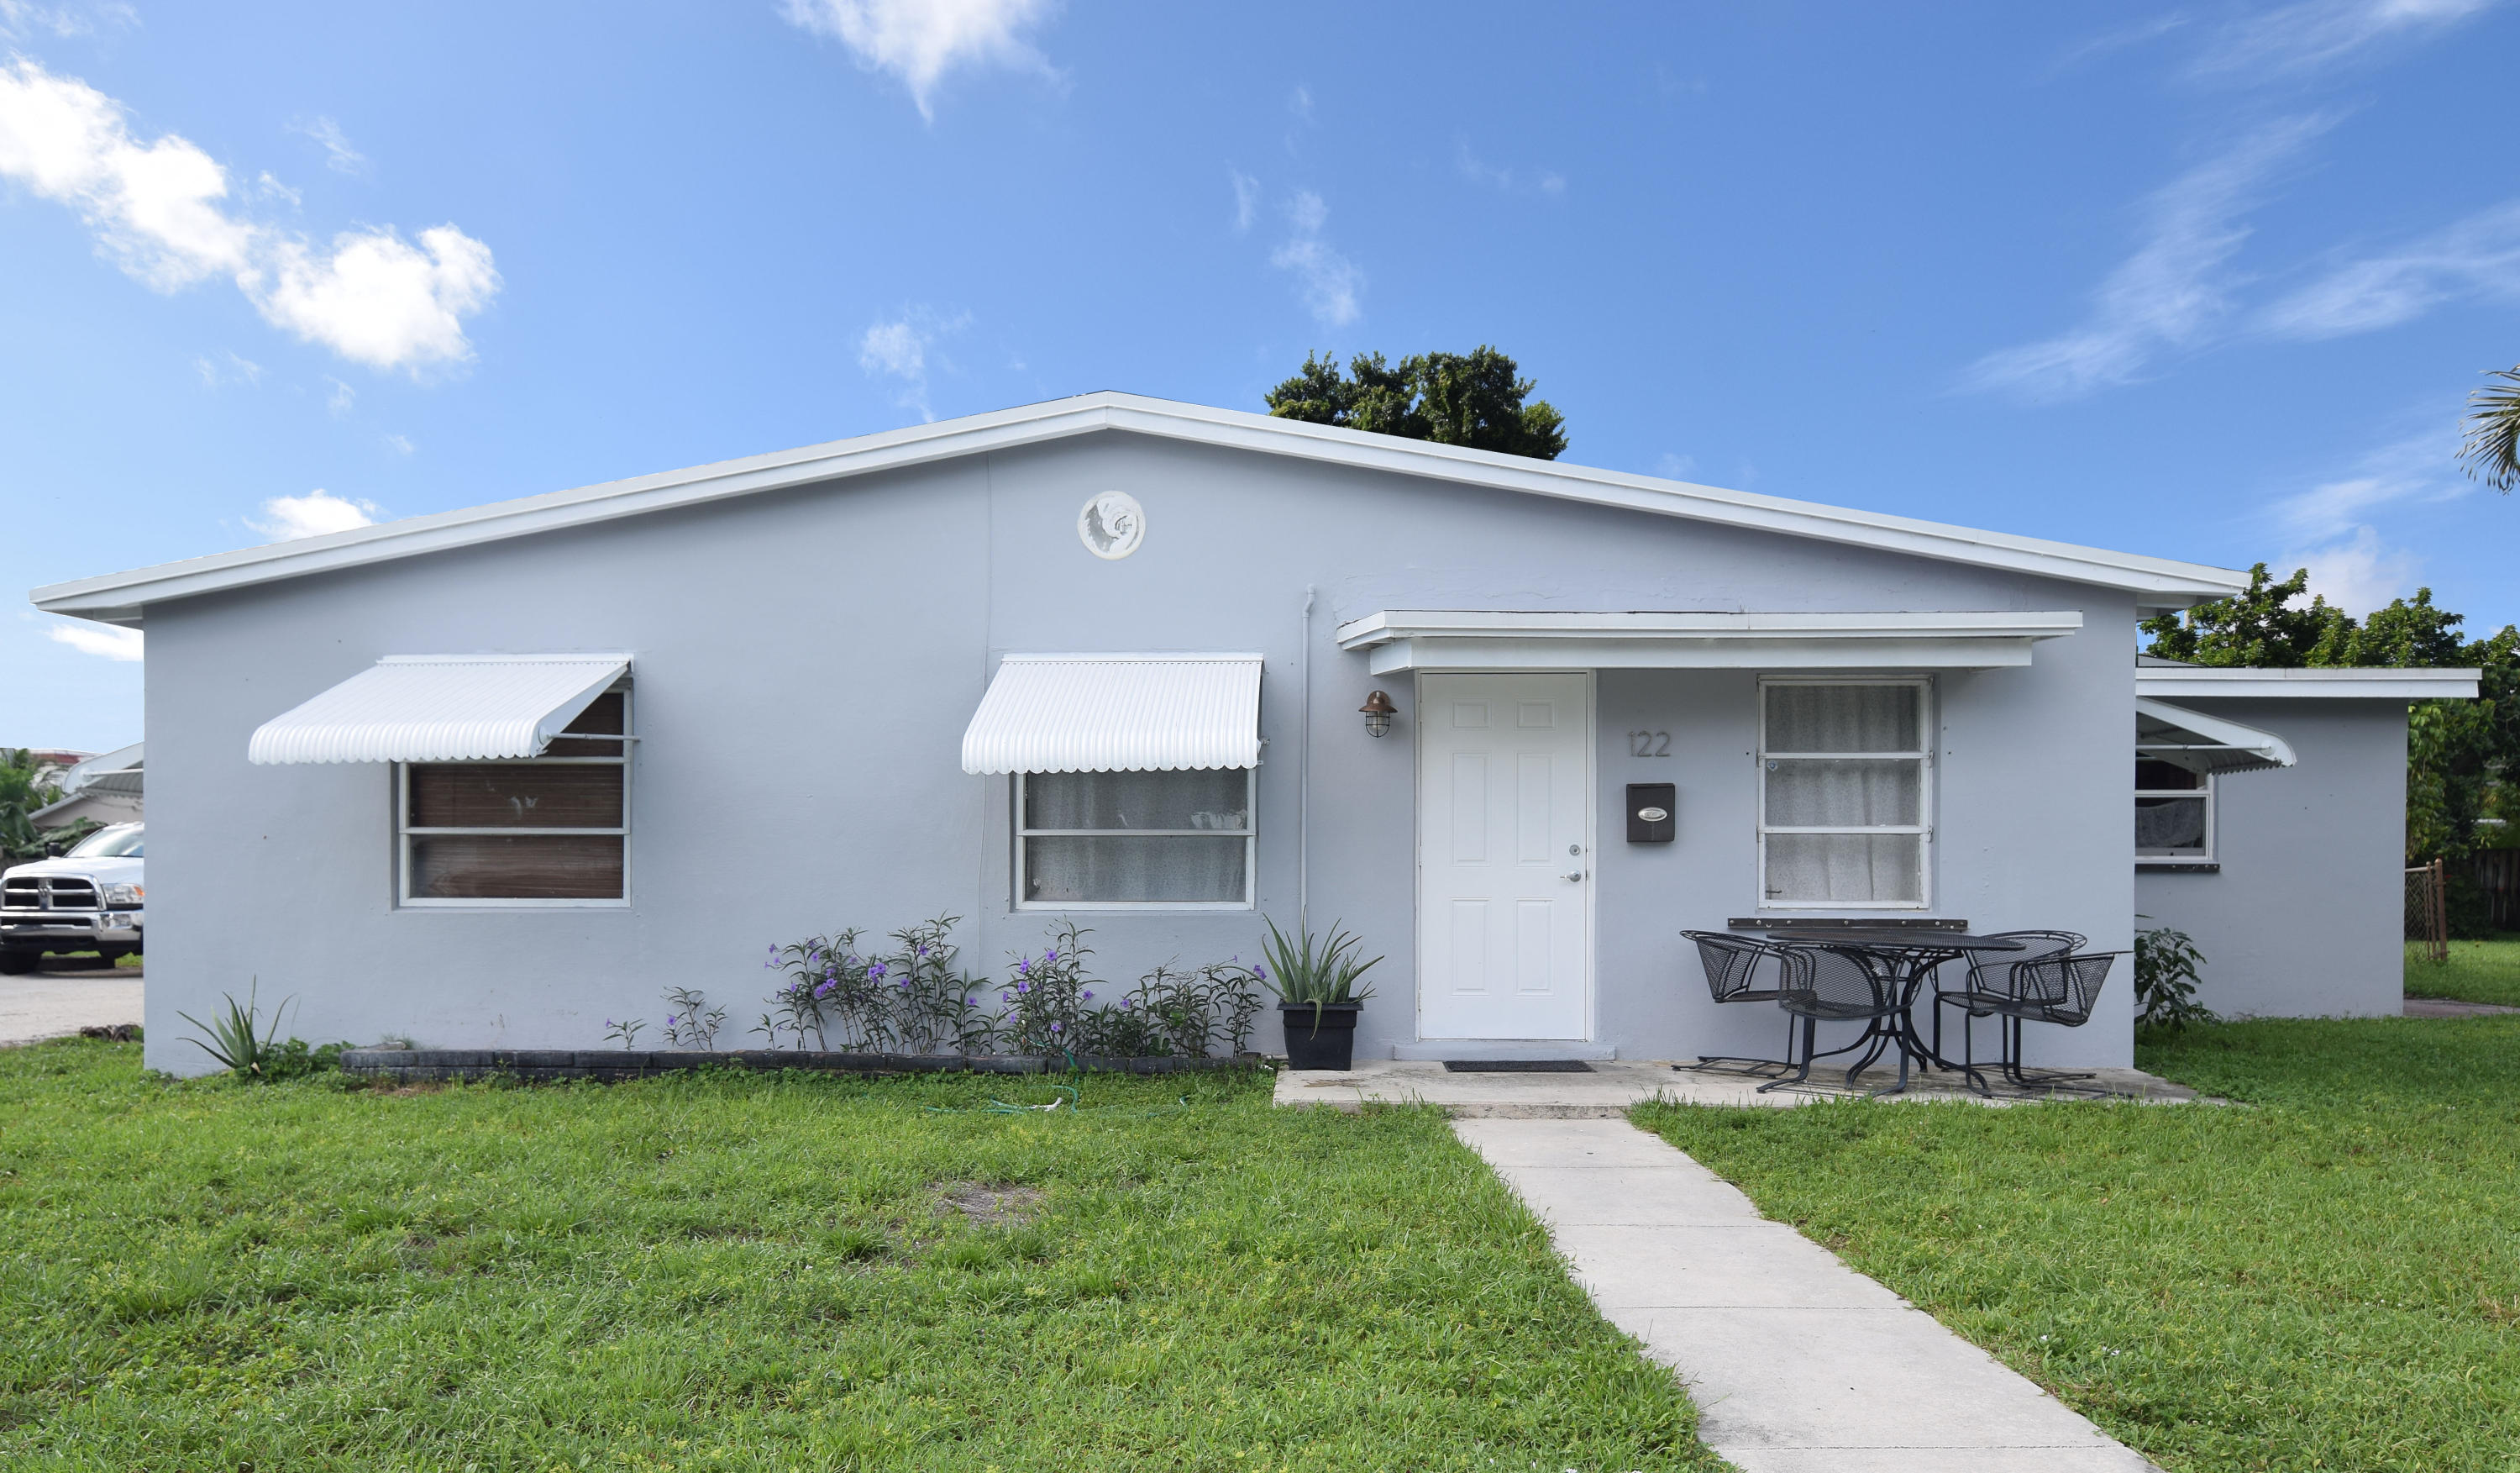 122 SE 9th Avenue Boynton Beach, FL 33435